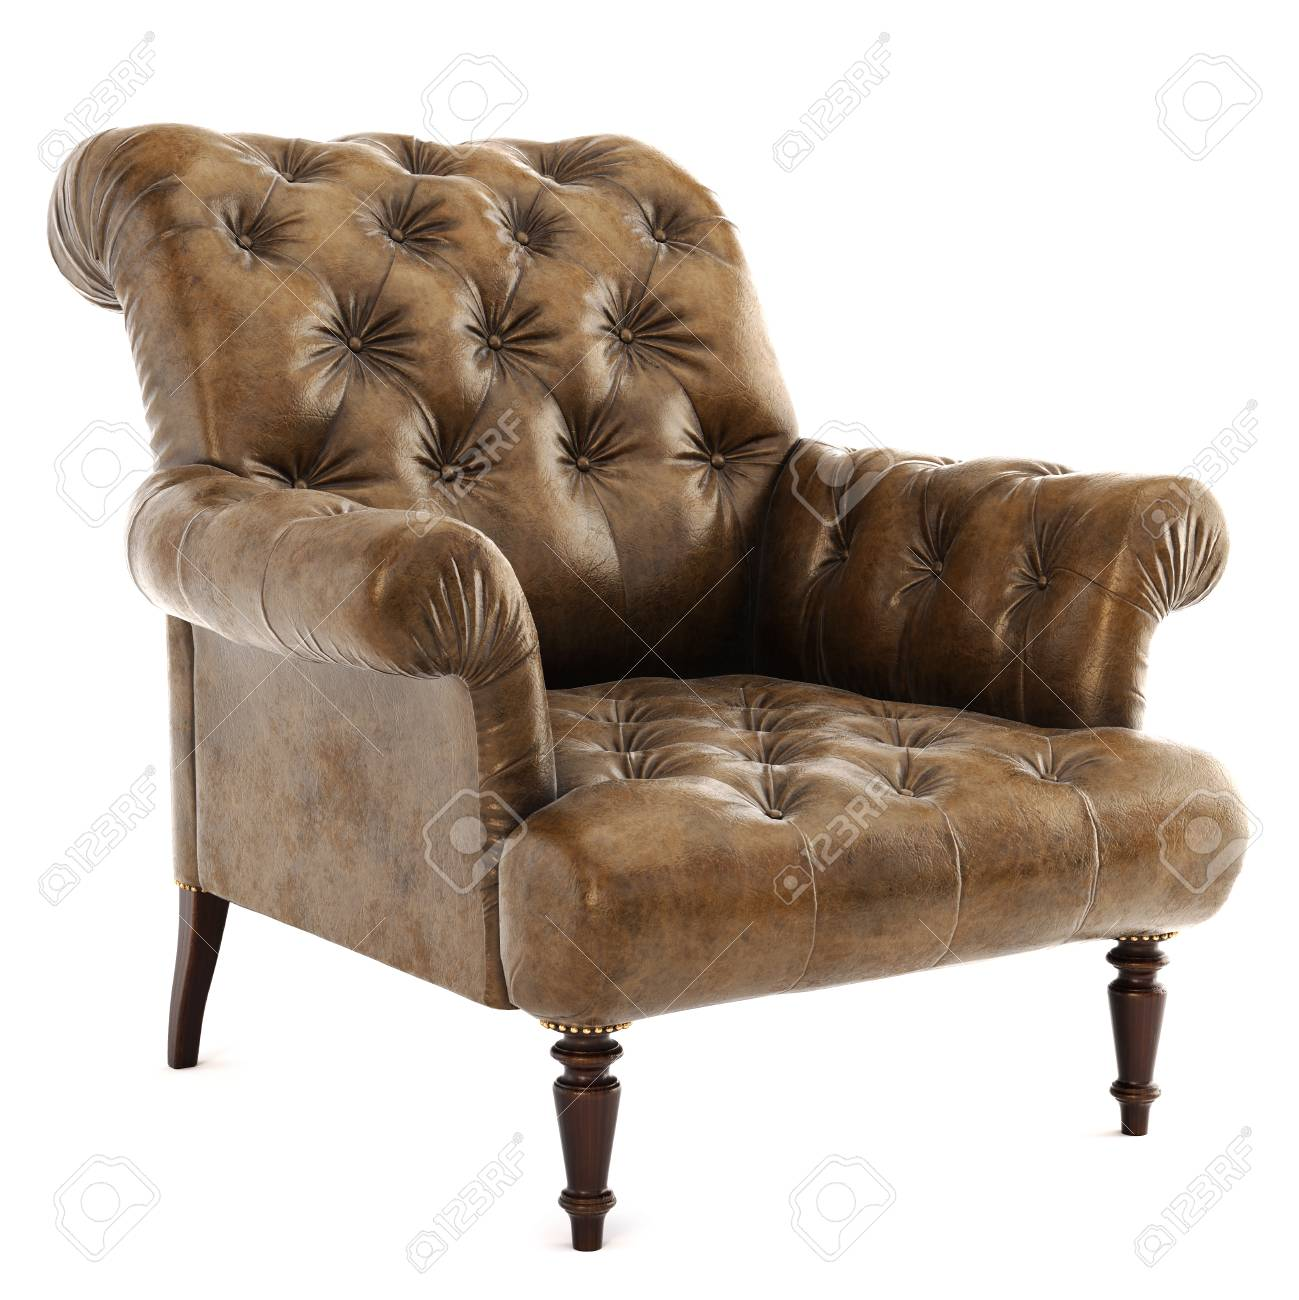 vintage arm chair eames green old styled brown armchair isolated on white background 3d rendering stock photo